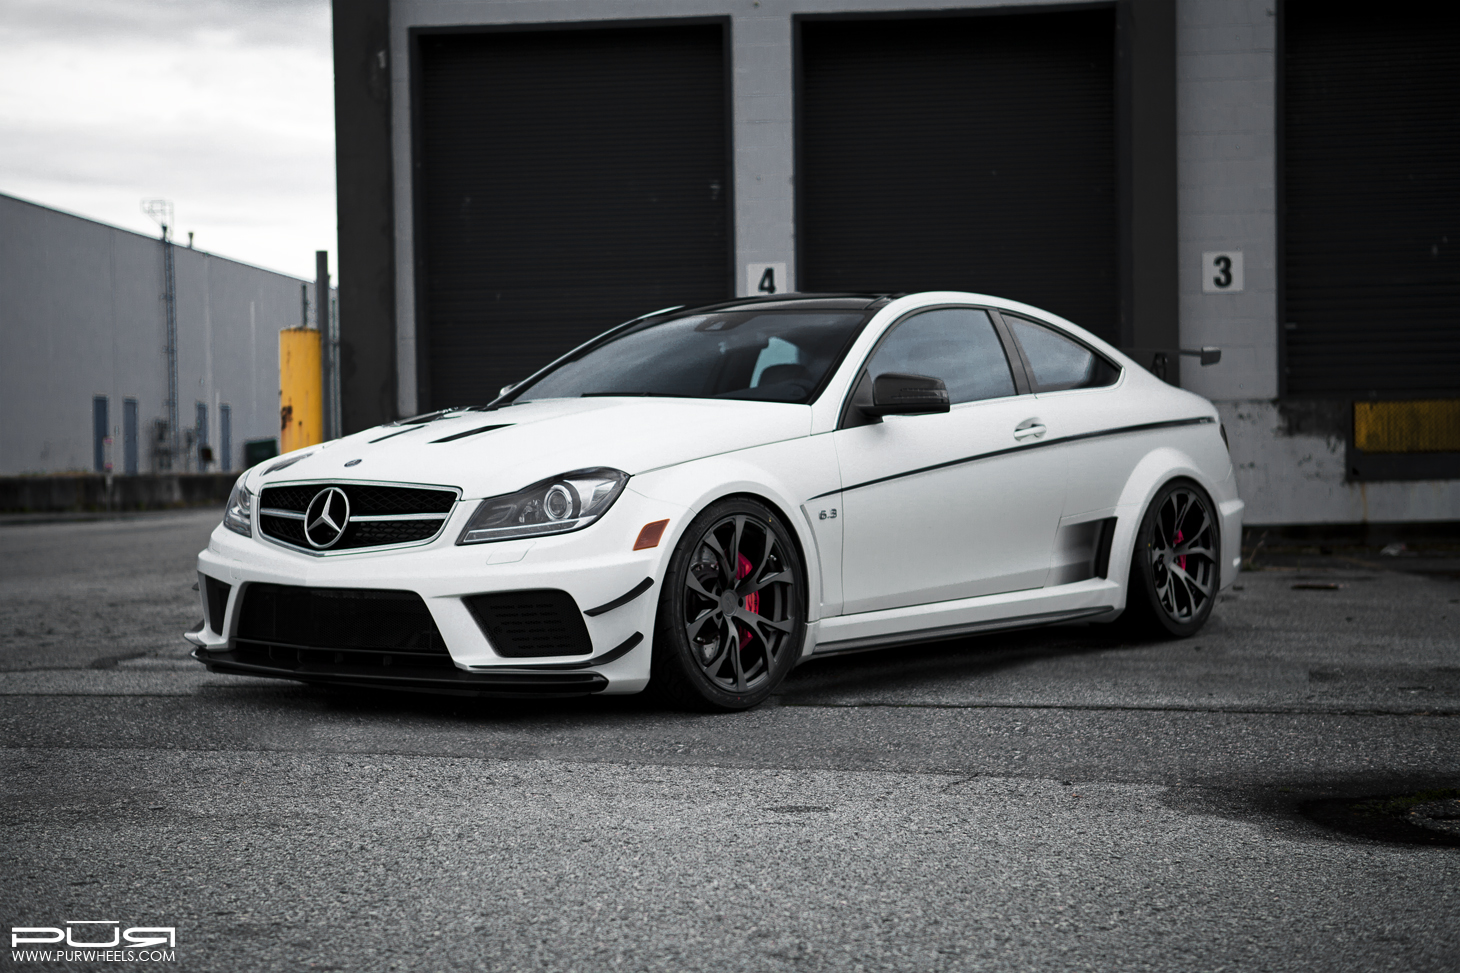 C 63 Amg Coupe Black Series On Pur Wheels Looks Ferocious